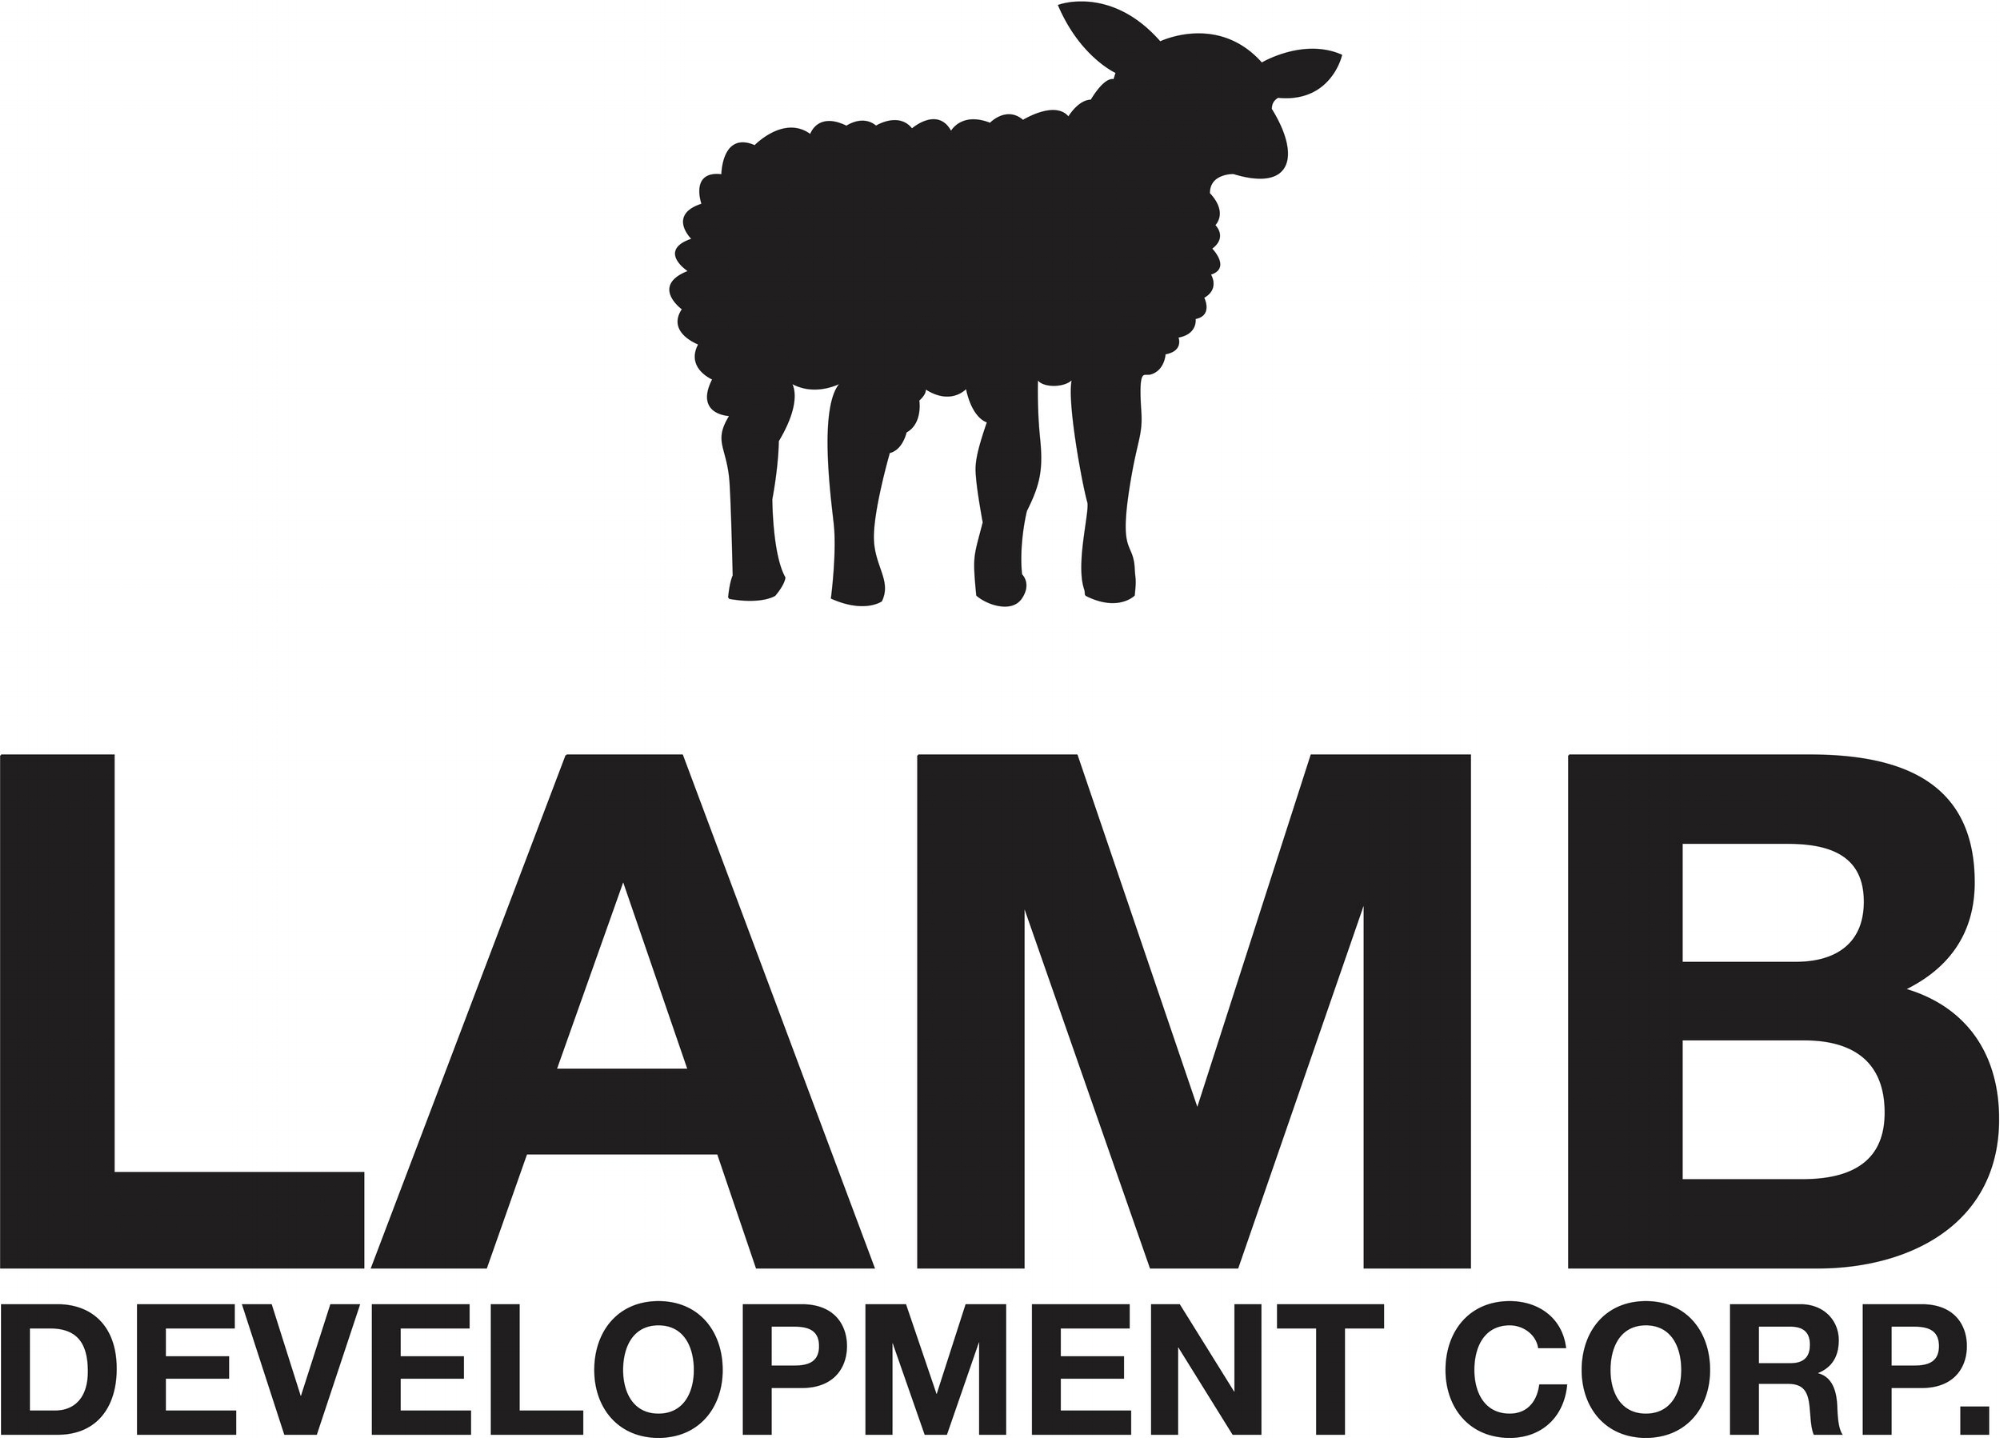 Lamb Development Corp.jpg